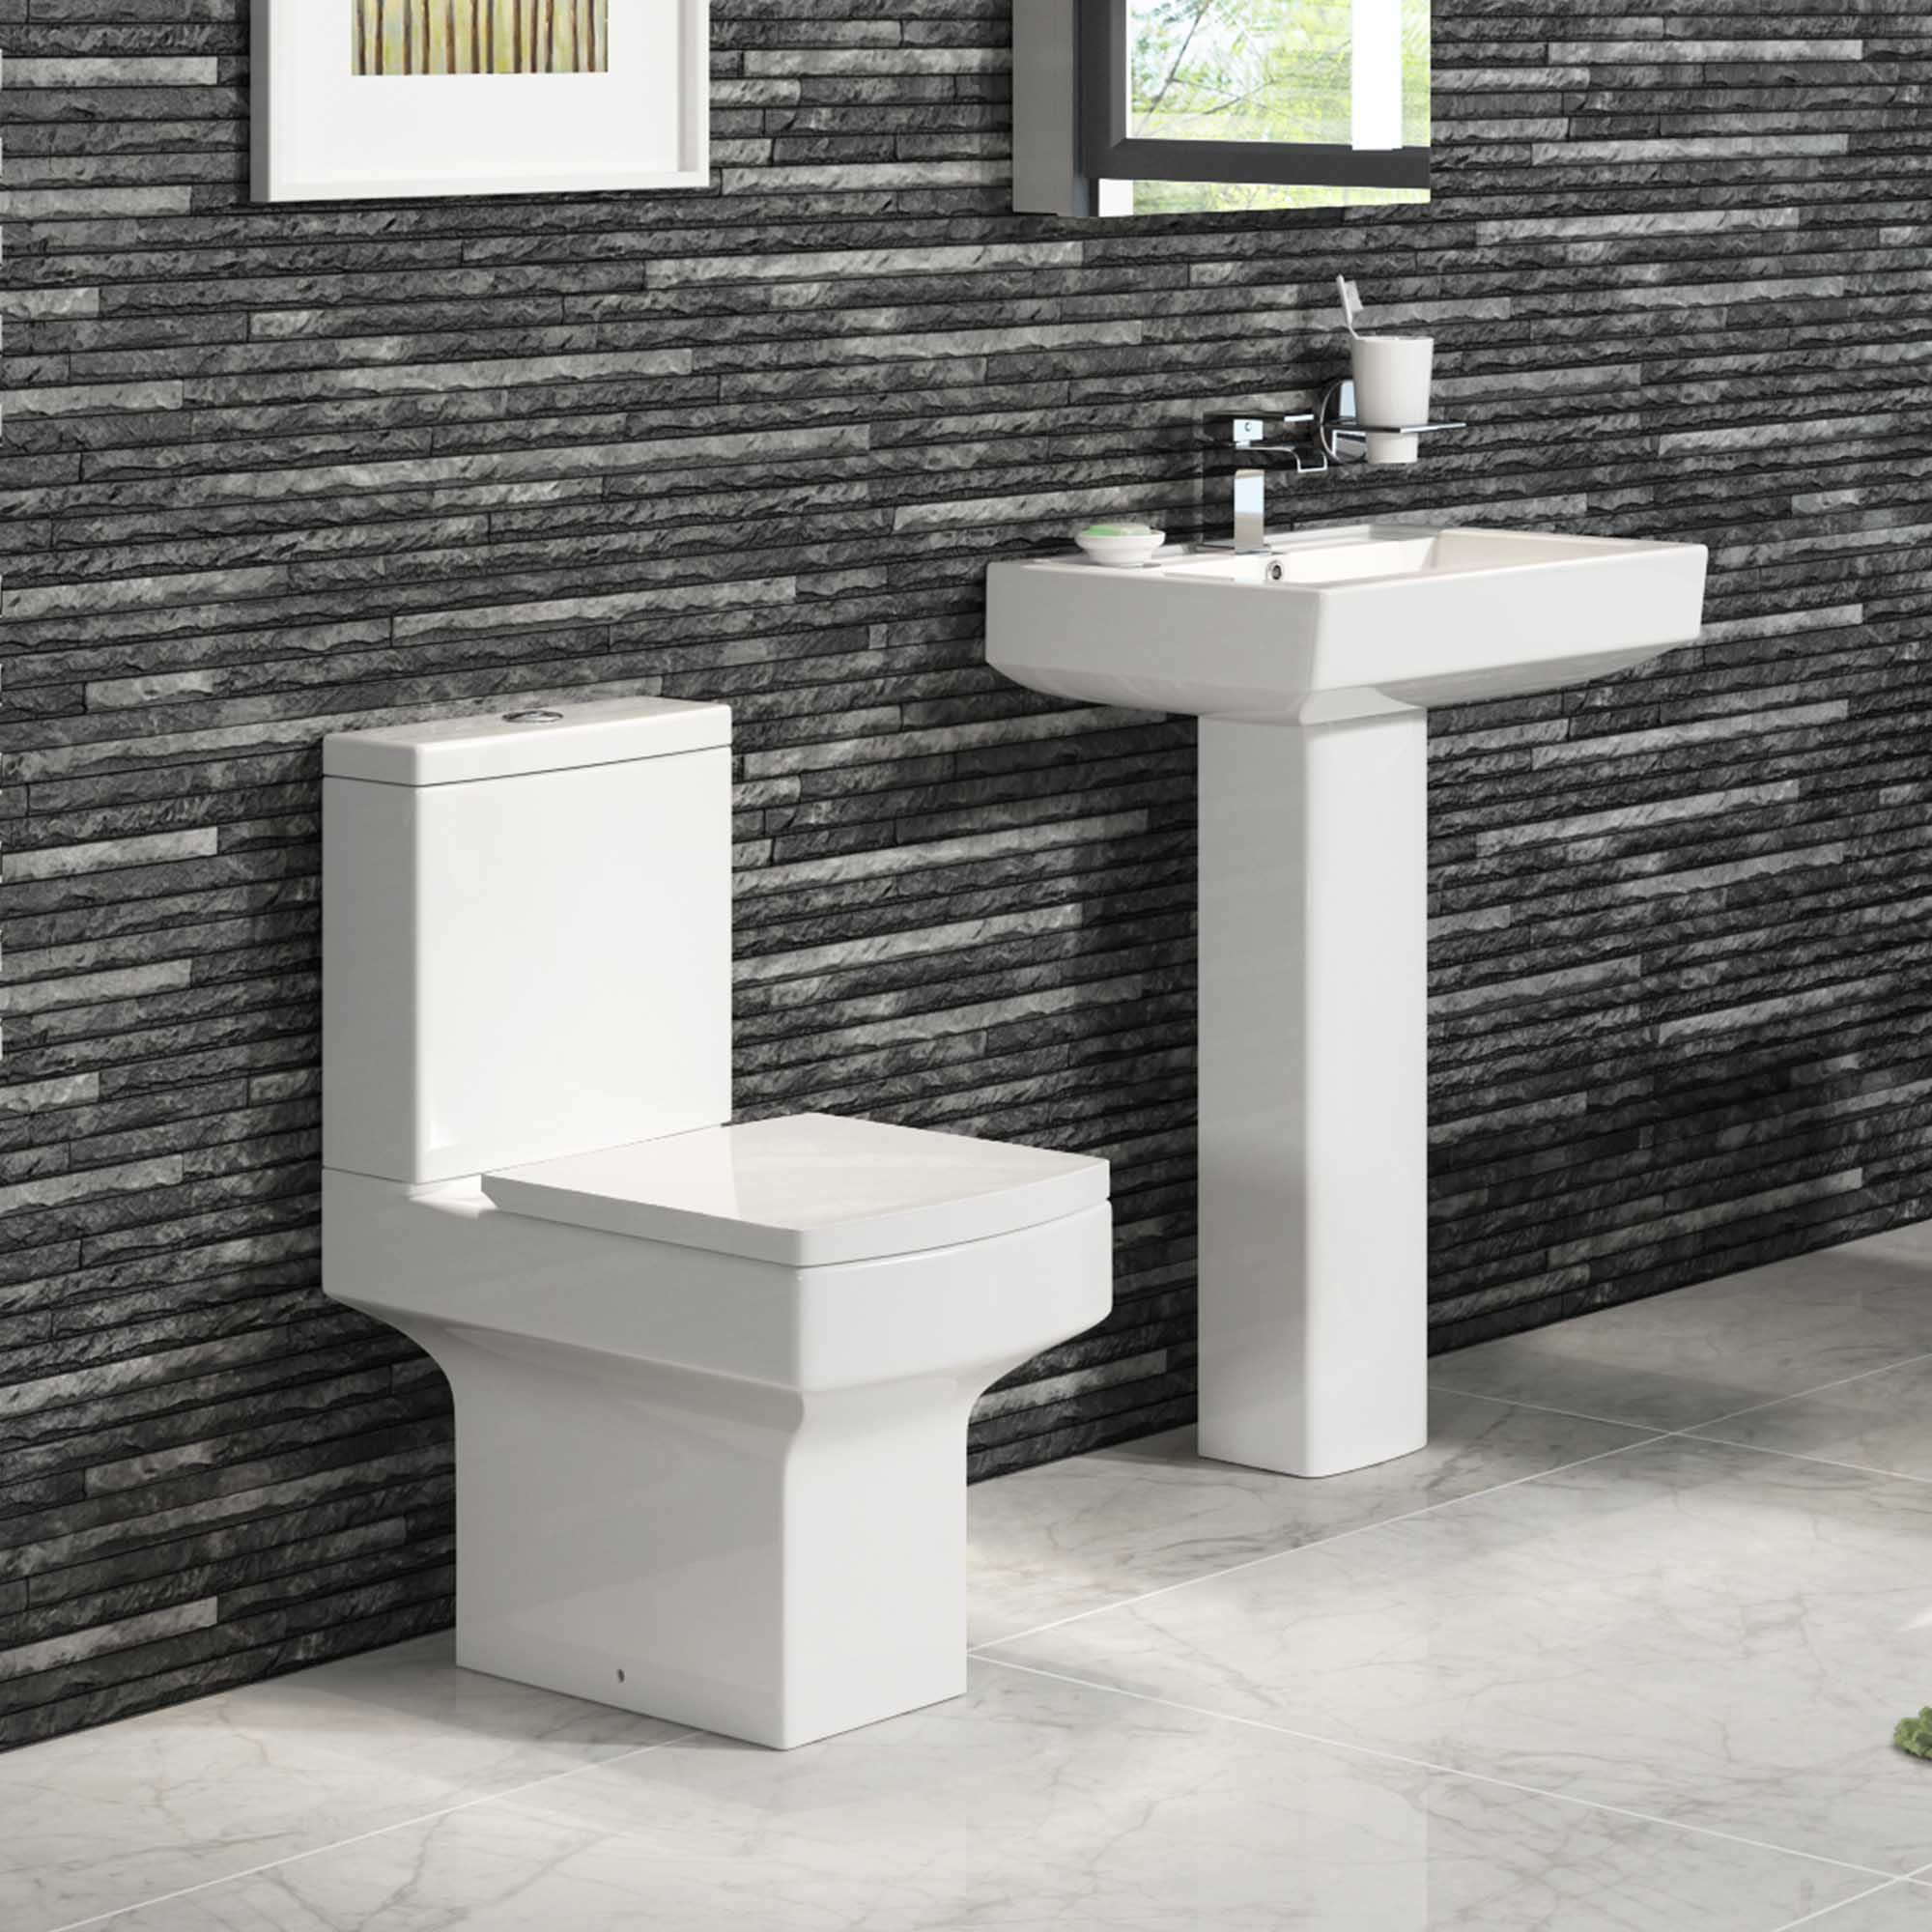 Modern Close Coupled Square Toilet Basin Pedestal Complete